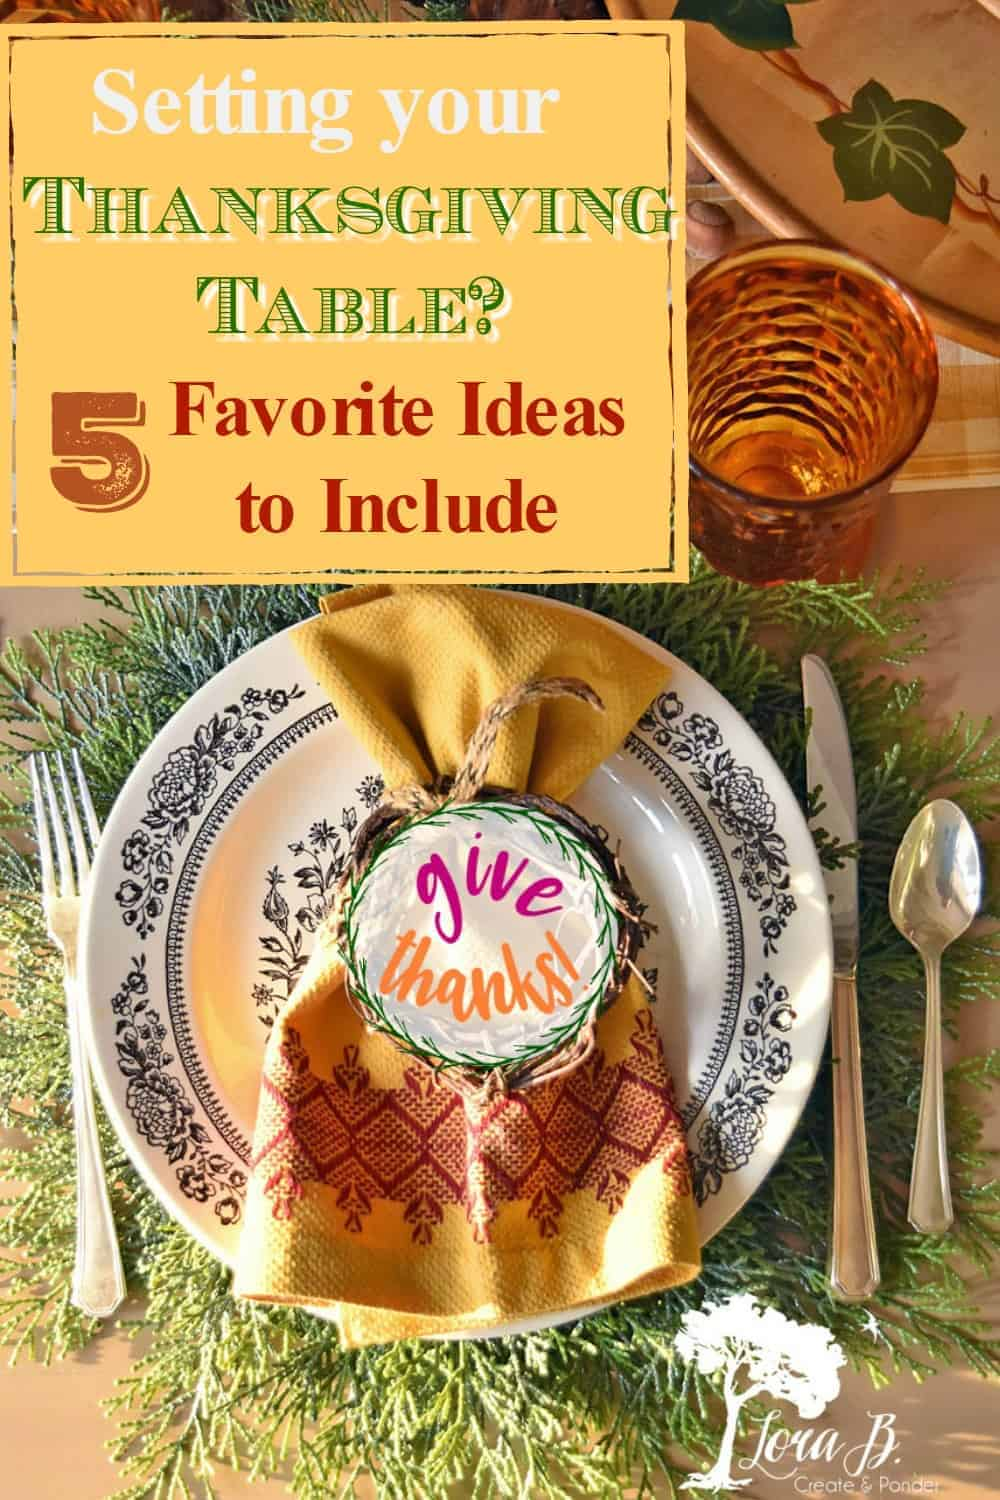 Favorite Thanksgiving Table Setting Ideas for a Cozy Gathering